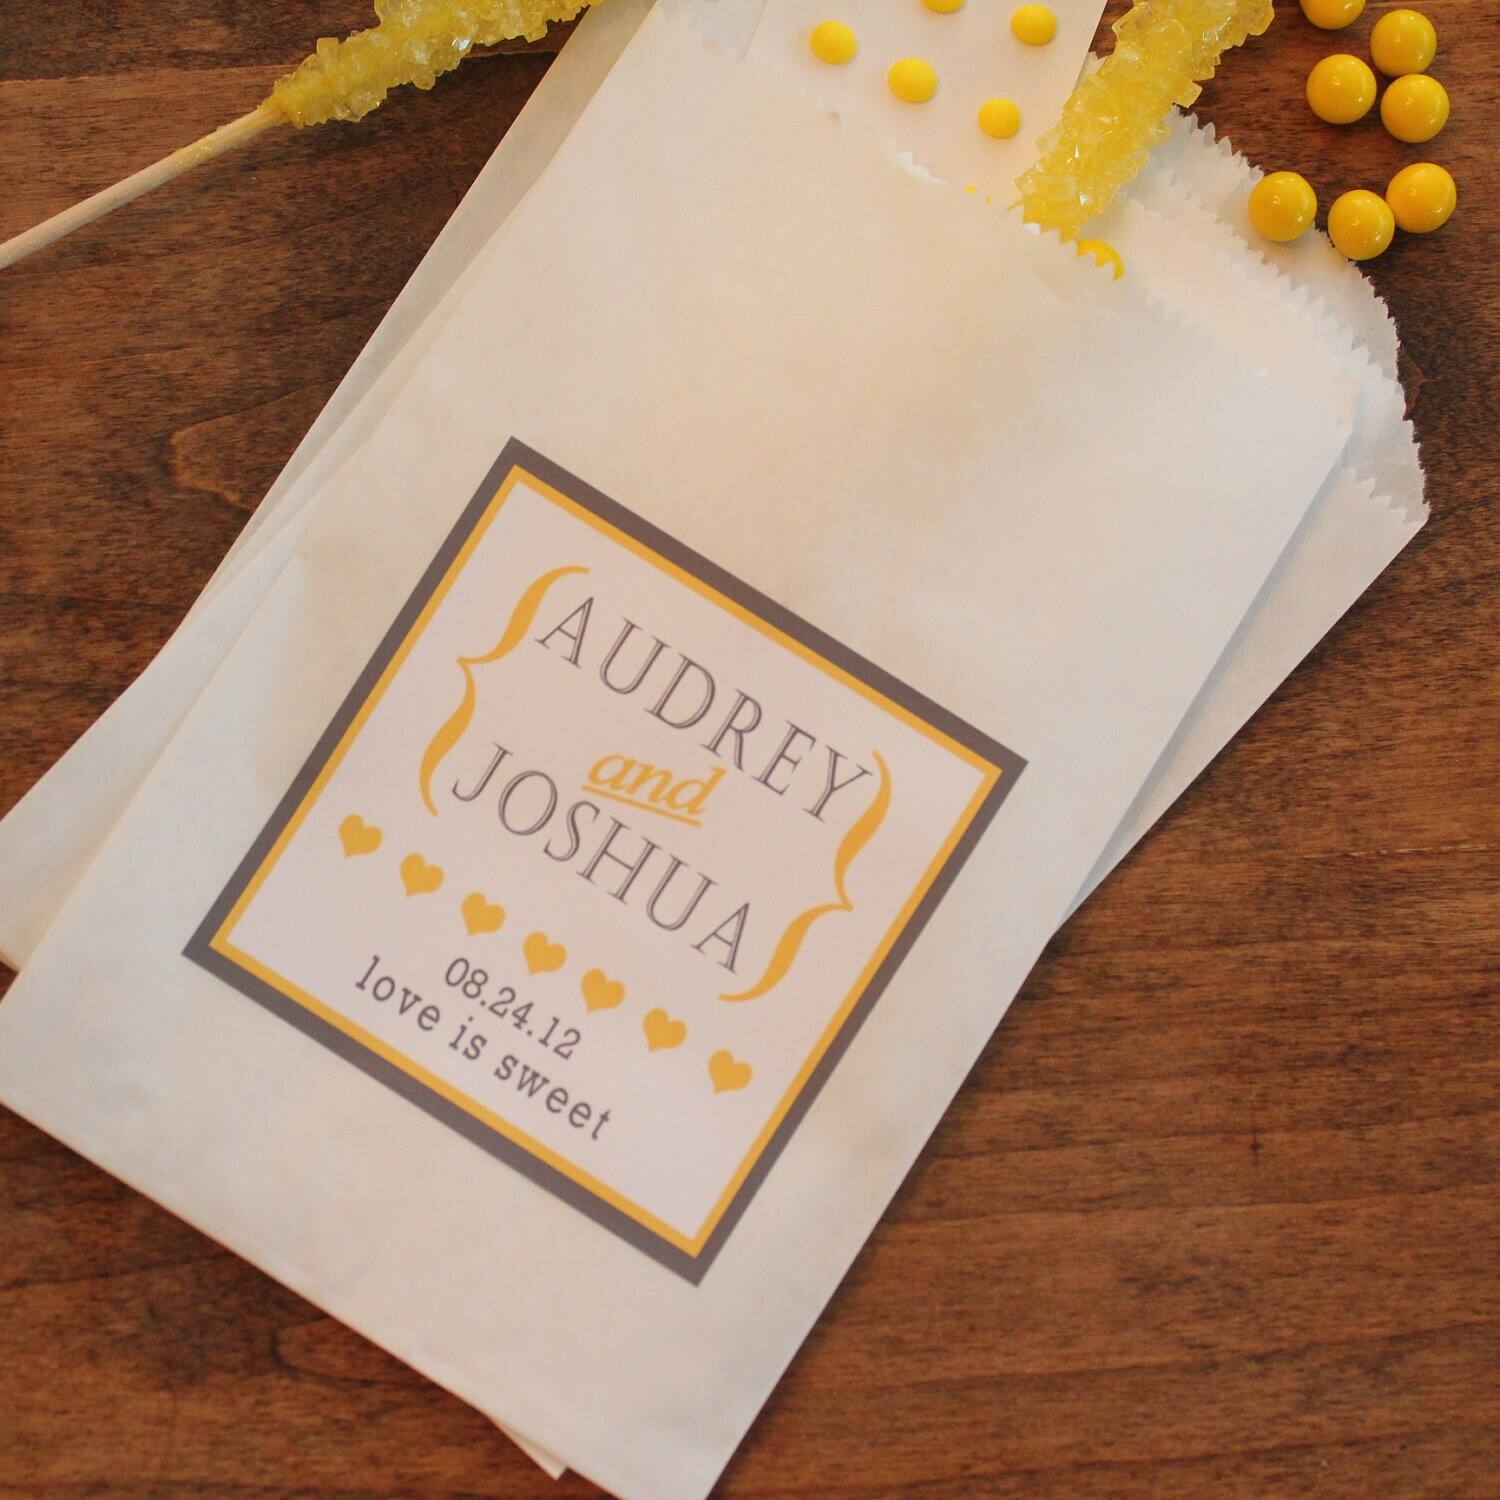 Wedding Favor Bag Labels : 24 Wedding Favor Bags with Personalized Audrey by thefavorbox